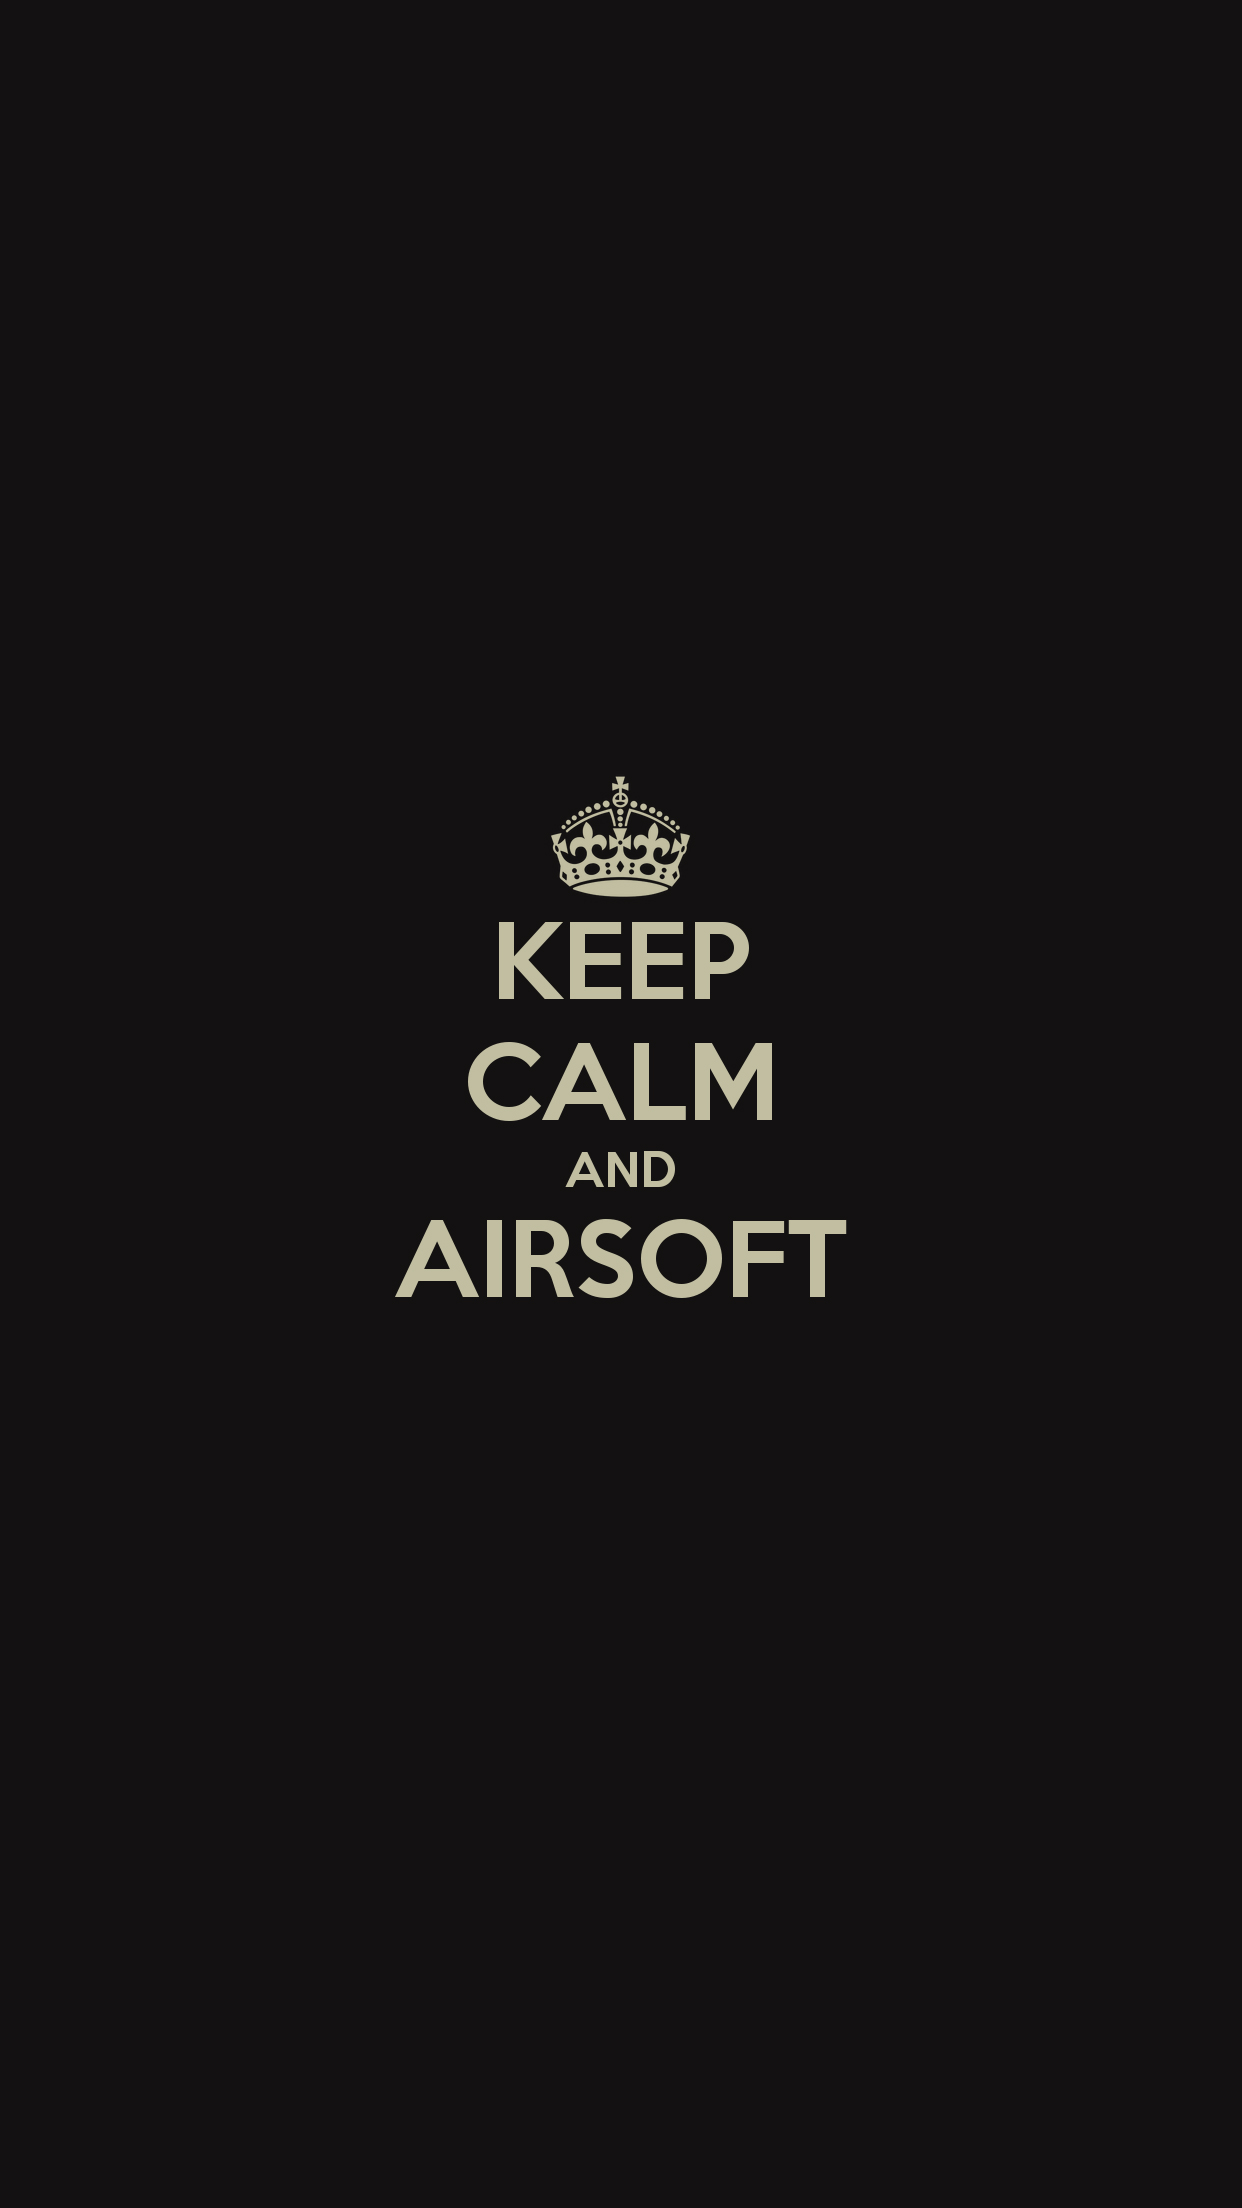 Keep Calm And Airsoft Wallpaper For Iphone X 8 7 6